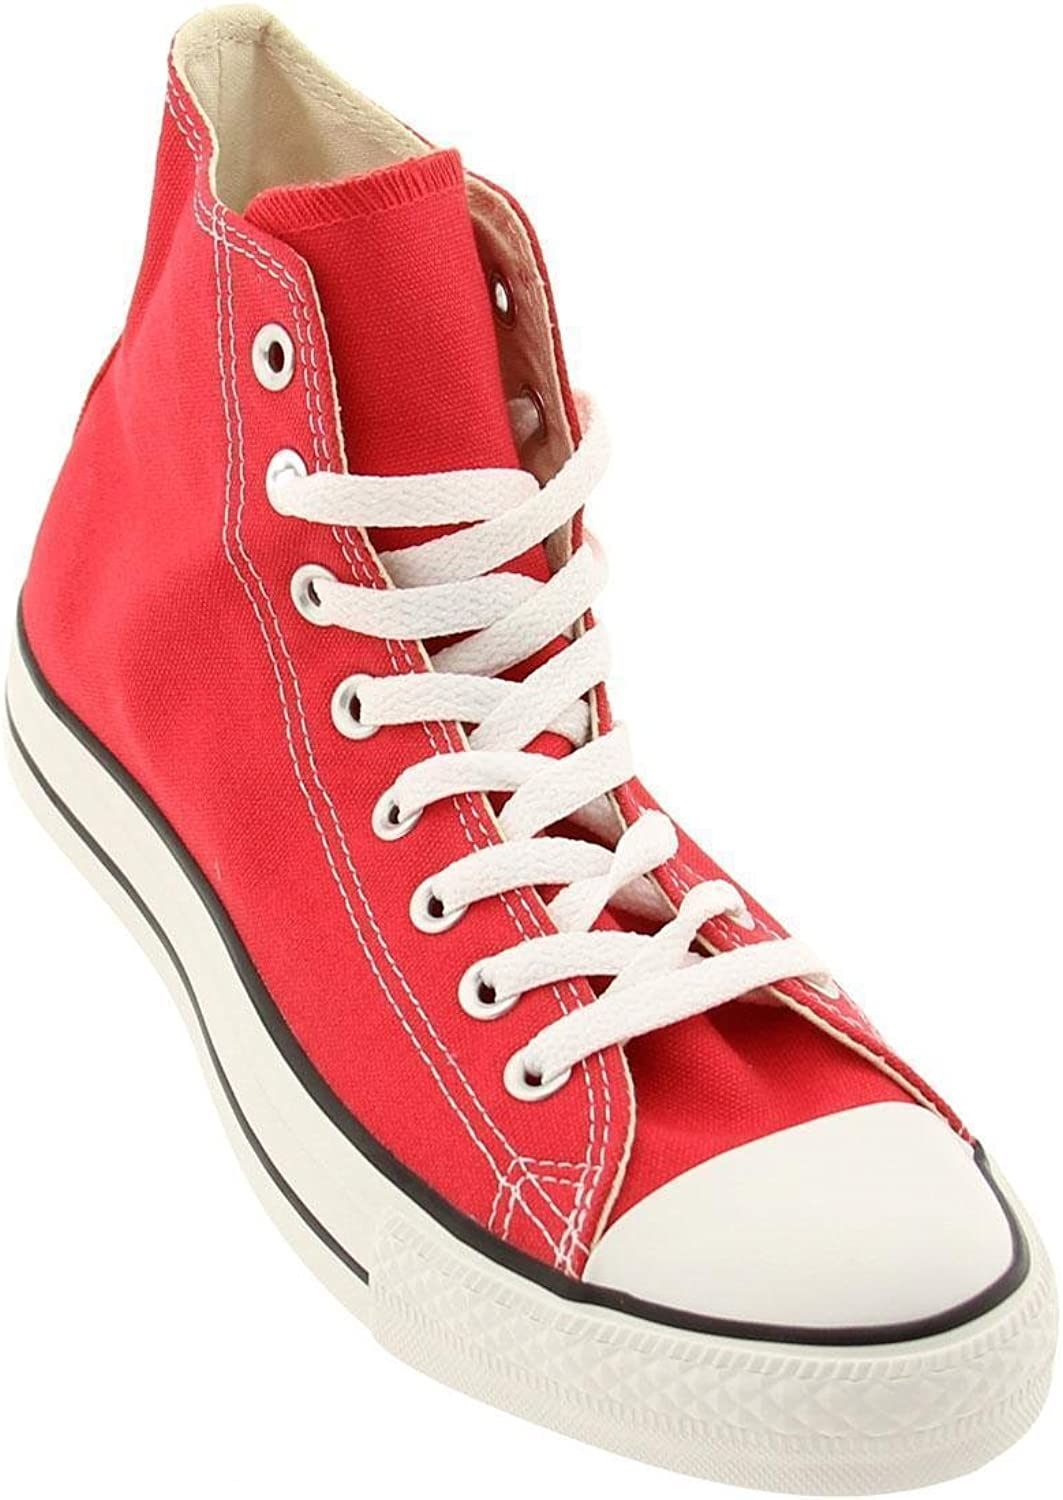 CONVERSE CHUCK TAYLOR ALL STAR HI CANVAS MEN SHOES RED M9621 SIZE 11 NEW